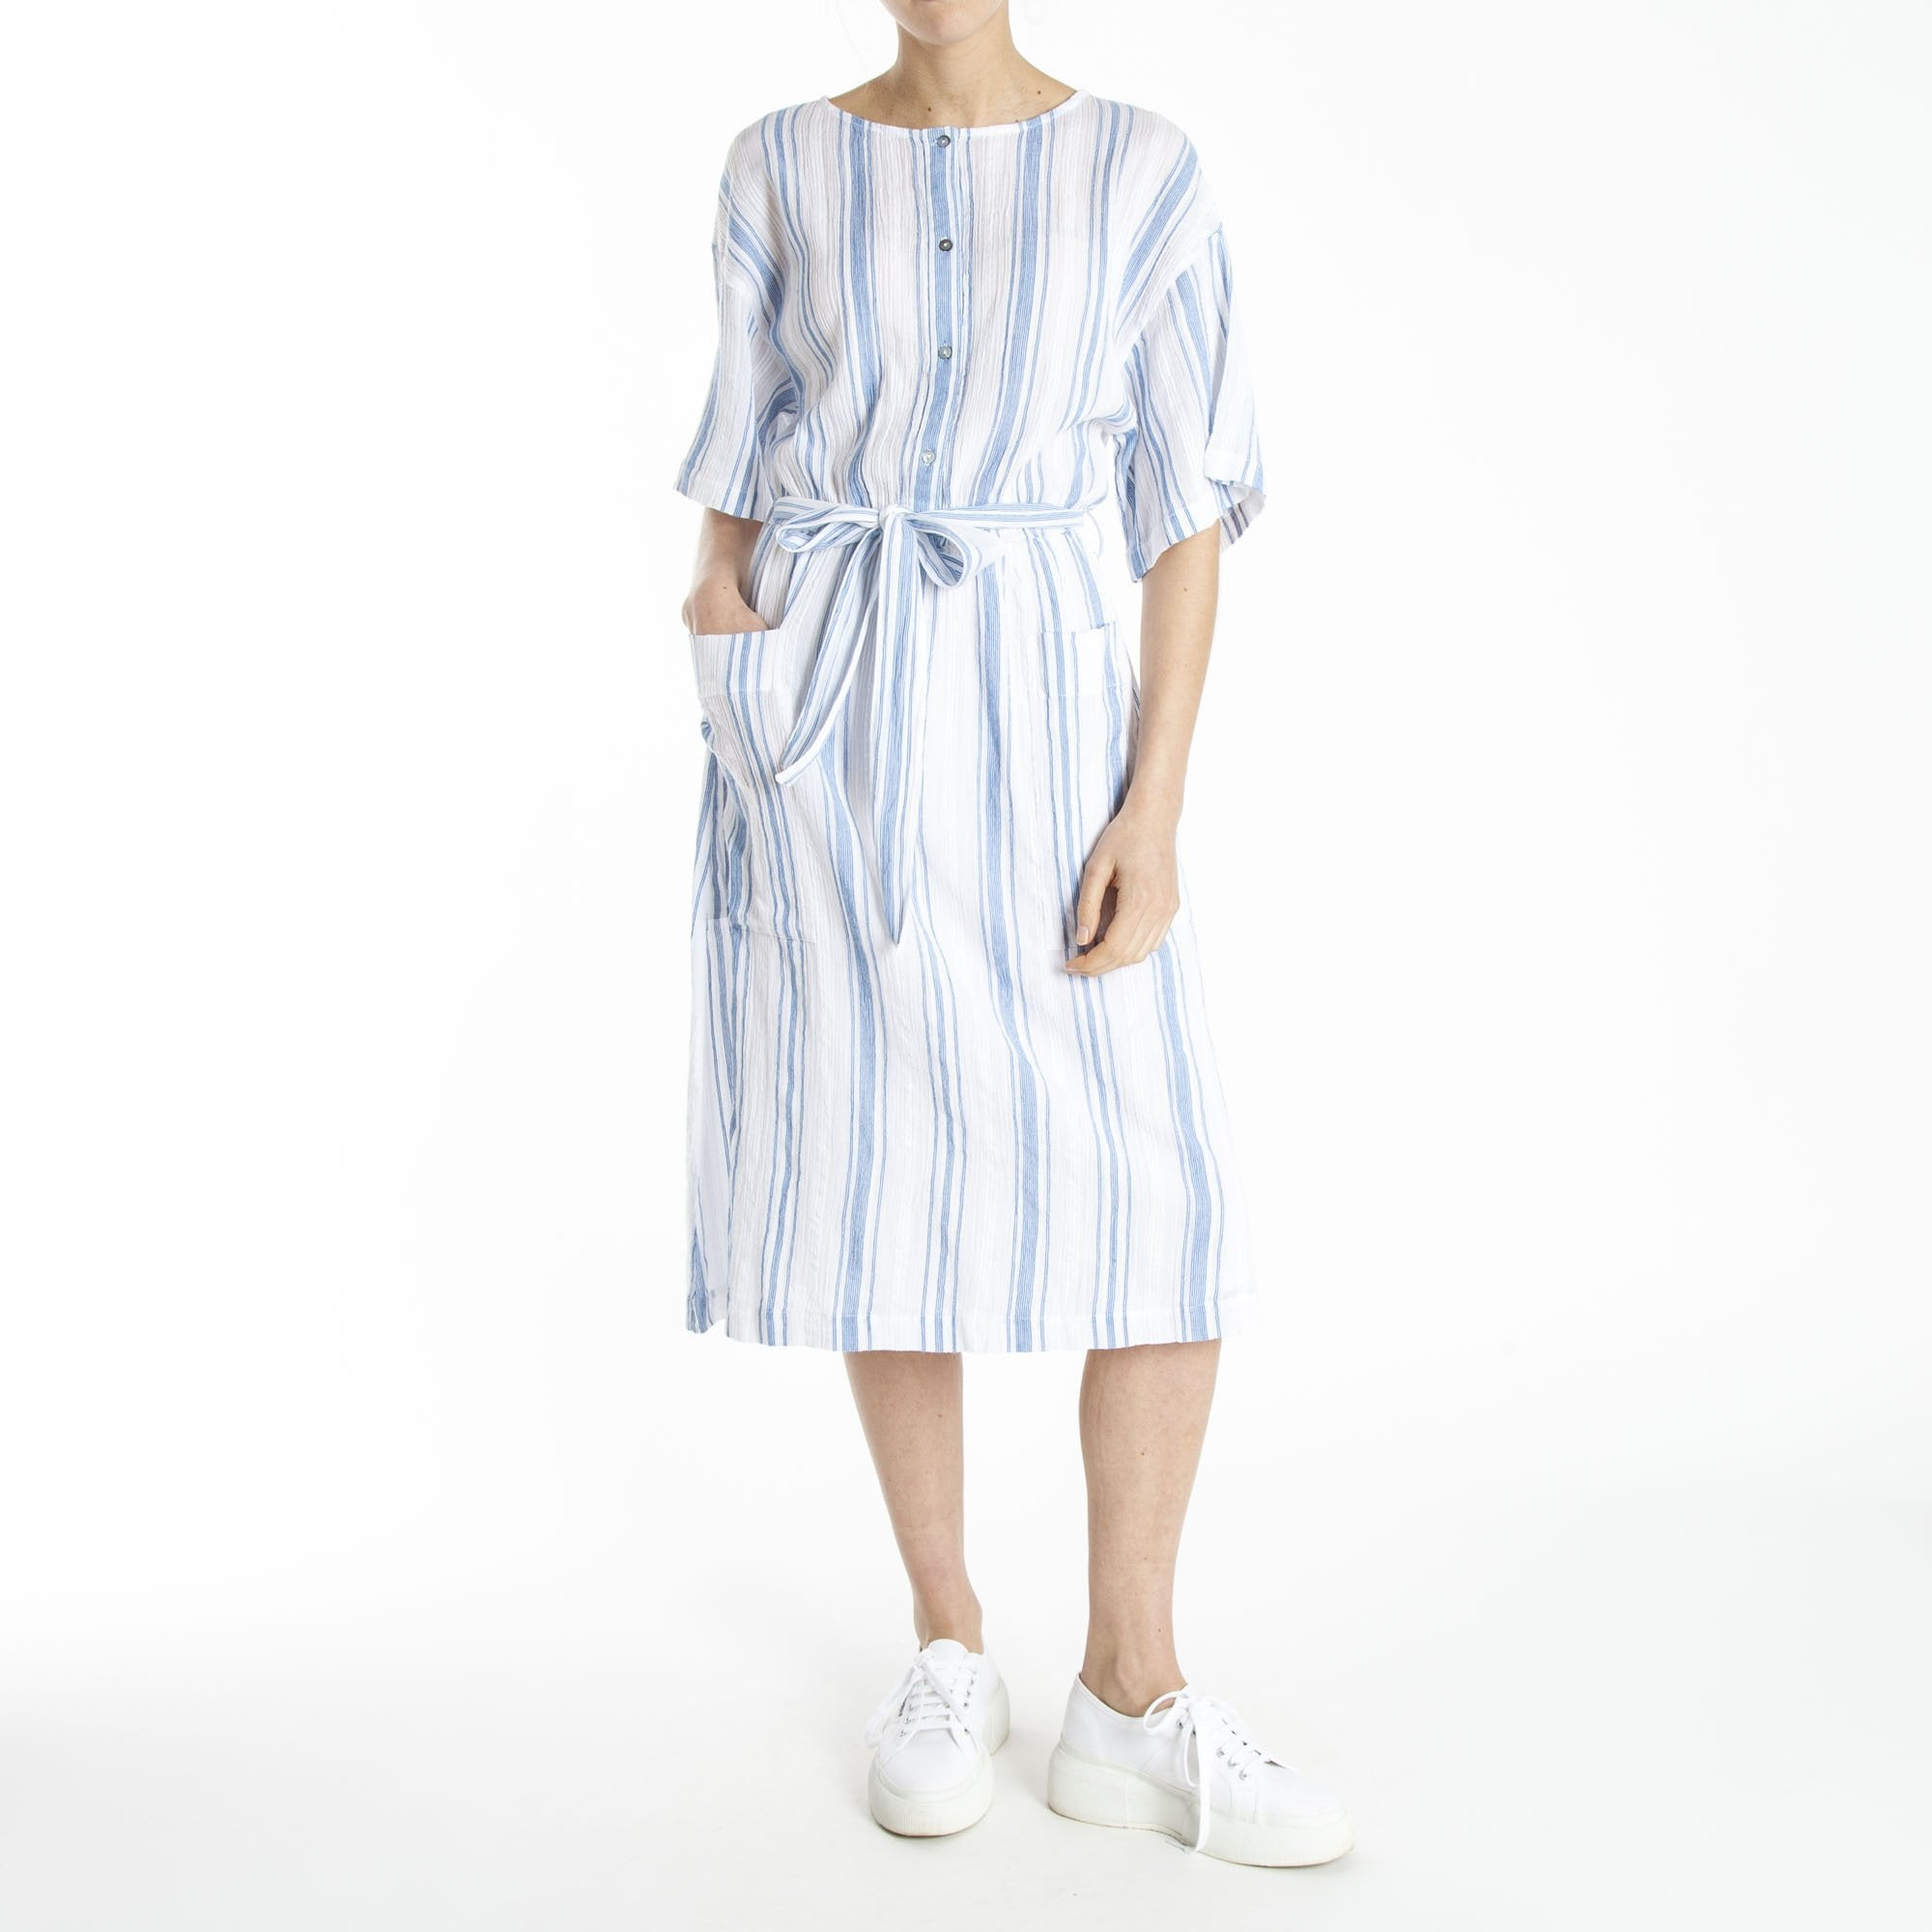 fd93518ed38e DESIGNERS SOCIETY Cheesecloth Stripe Dress in Blue/White